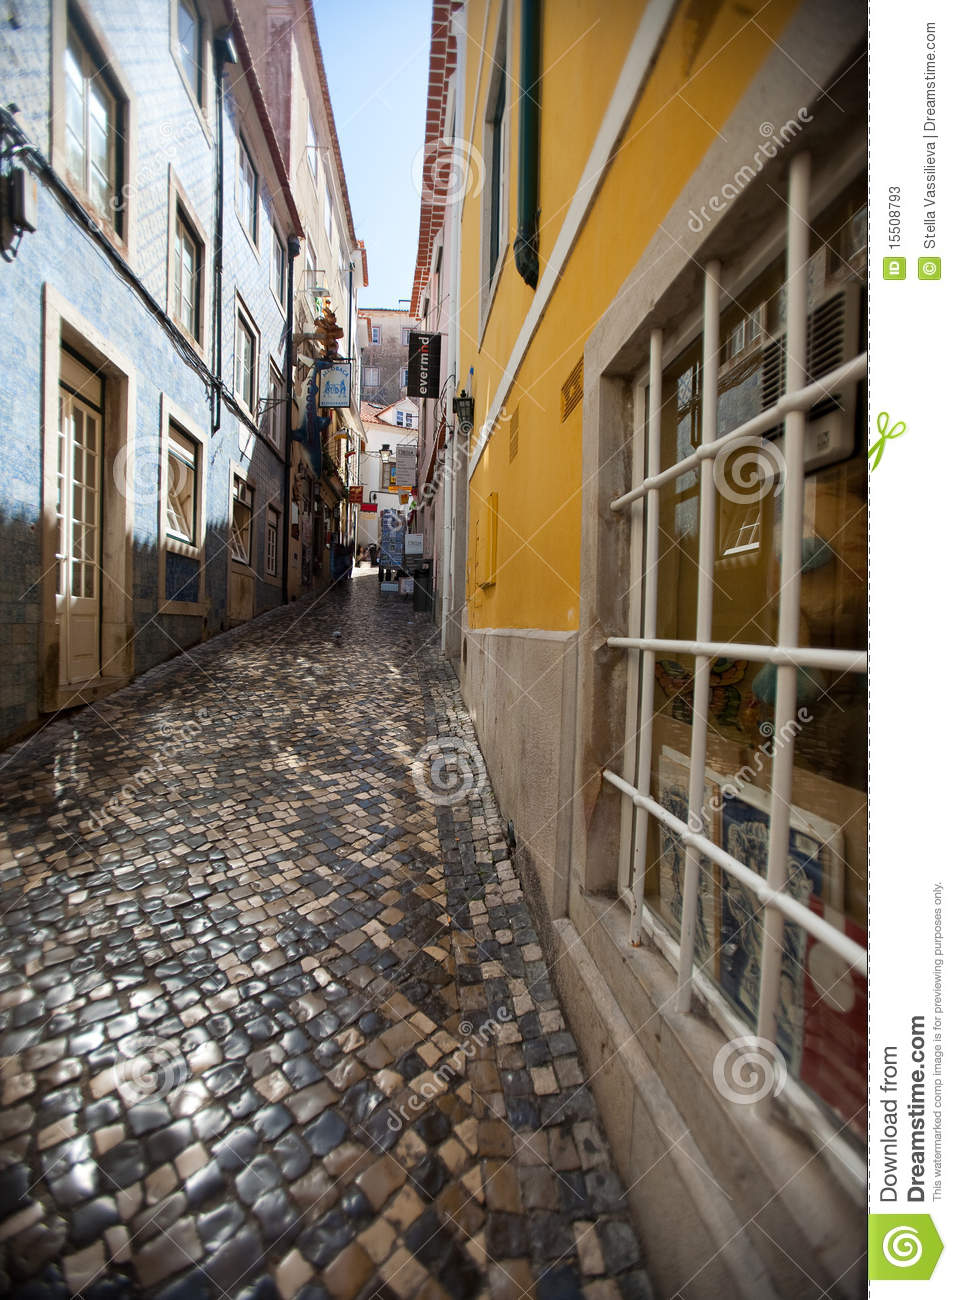 Narrow Streets Of Small Town In Portugal Stock Image  Image 15508793